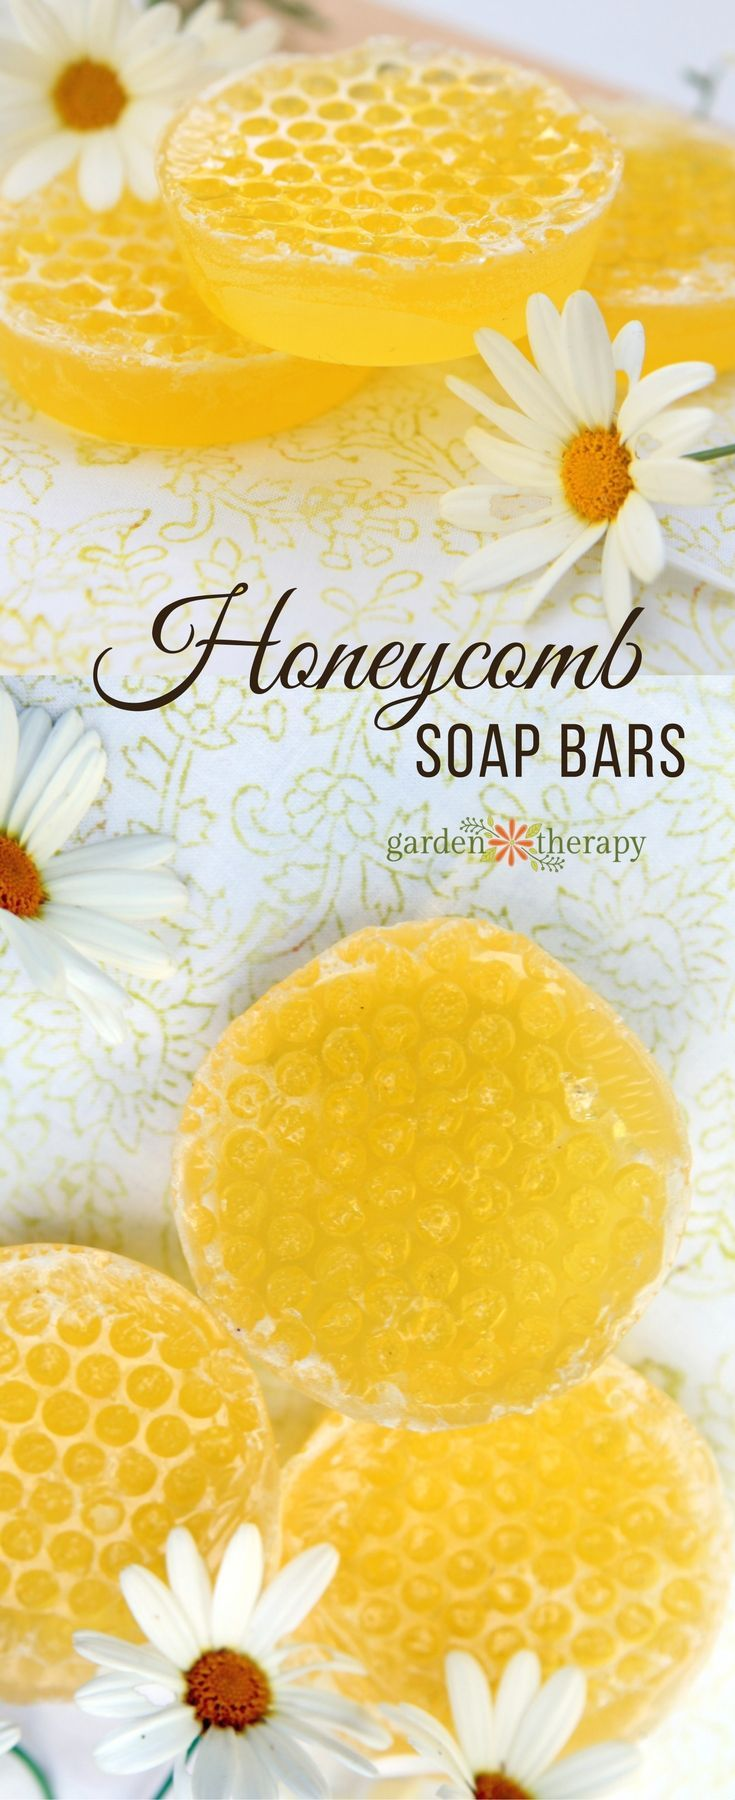 A Sweet Homemade Honeycomb Soap Recipe   – DIY Bath and Body Recipes for Beauty & Natural Skin Care